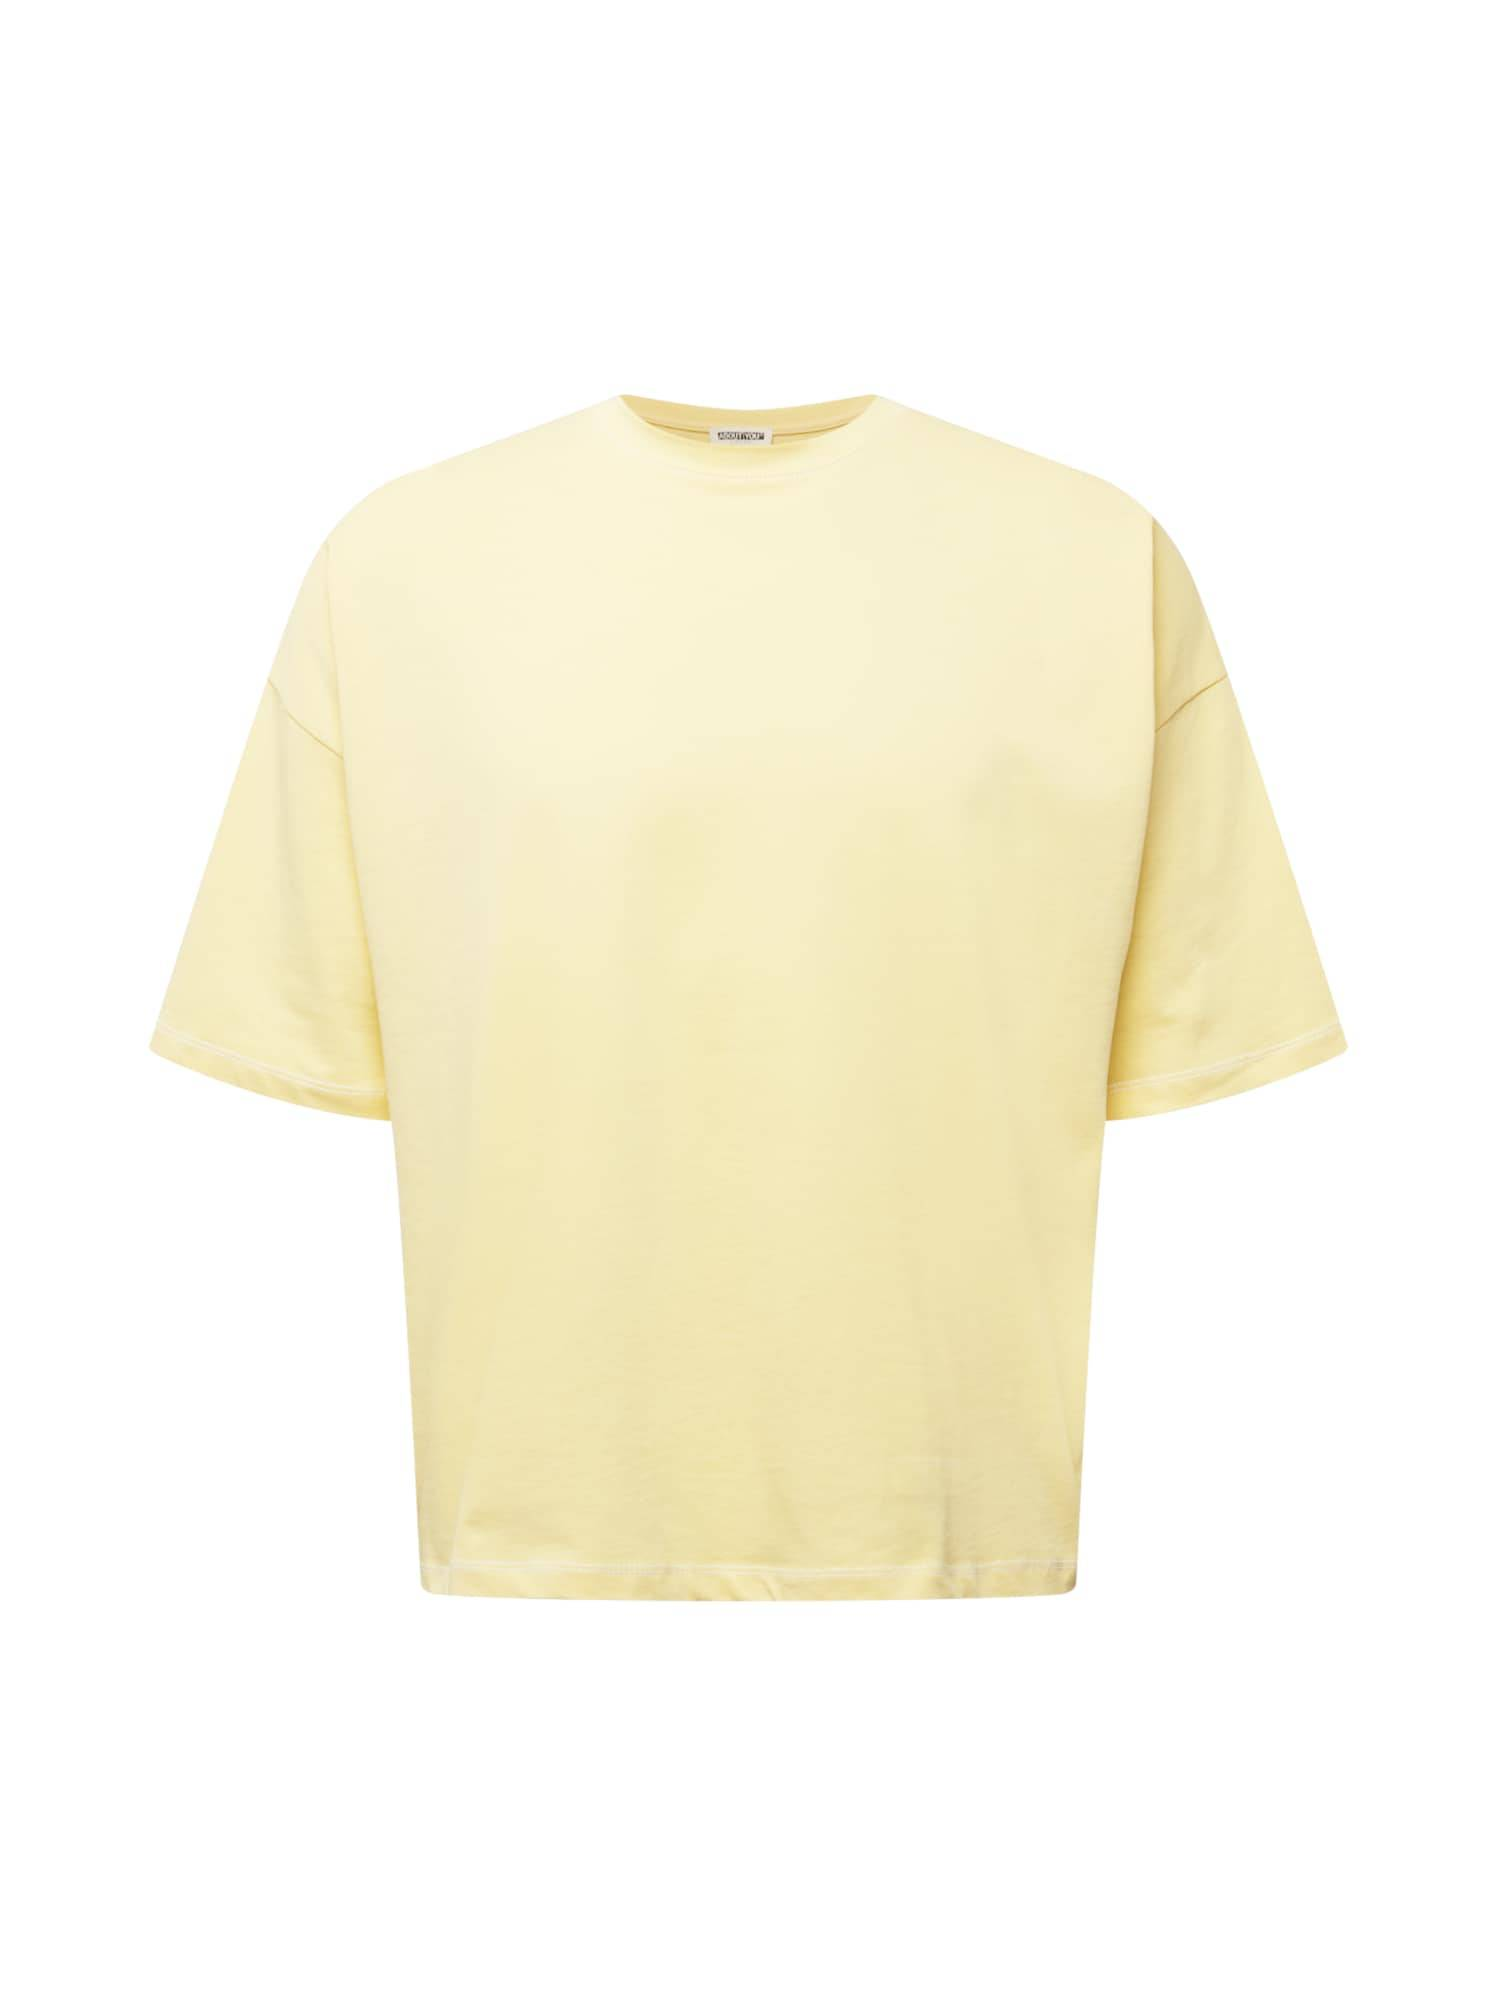 ABOUT YOU Limited T-Shirt 'Flynn'  - Jaune - Taille: XXL - male